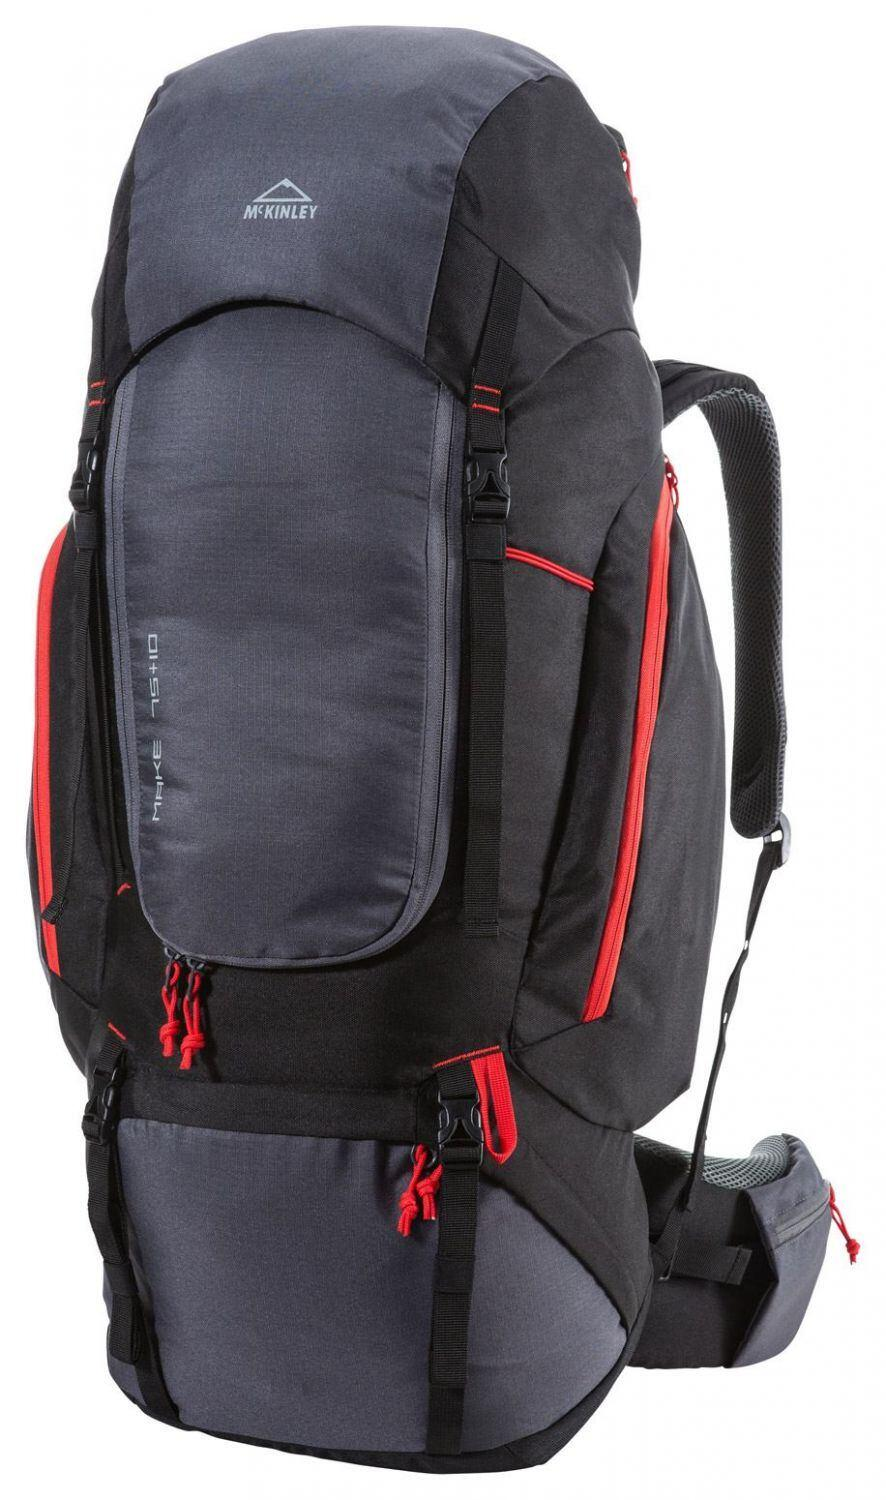 mckinley-make-75-10-trekkingrucksack-farbe-900-anthracite-black-red-